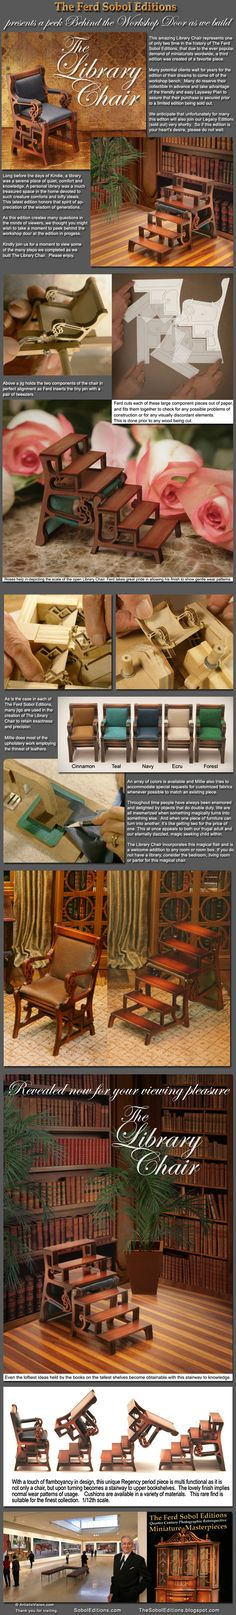 Miniature Library Chair - This chair flips into a ladder to reach high shelves in the library.